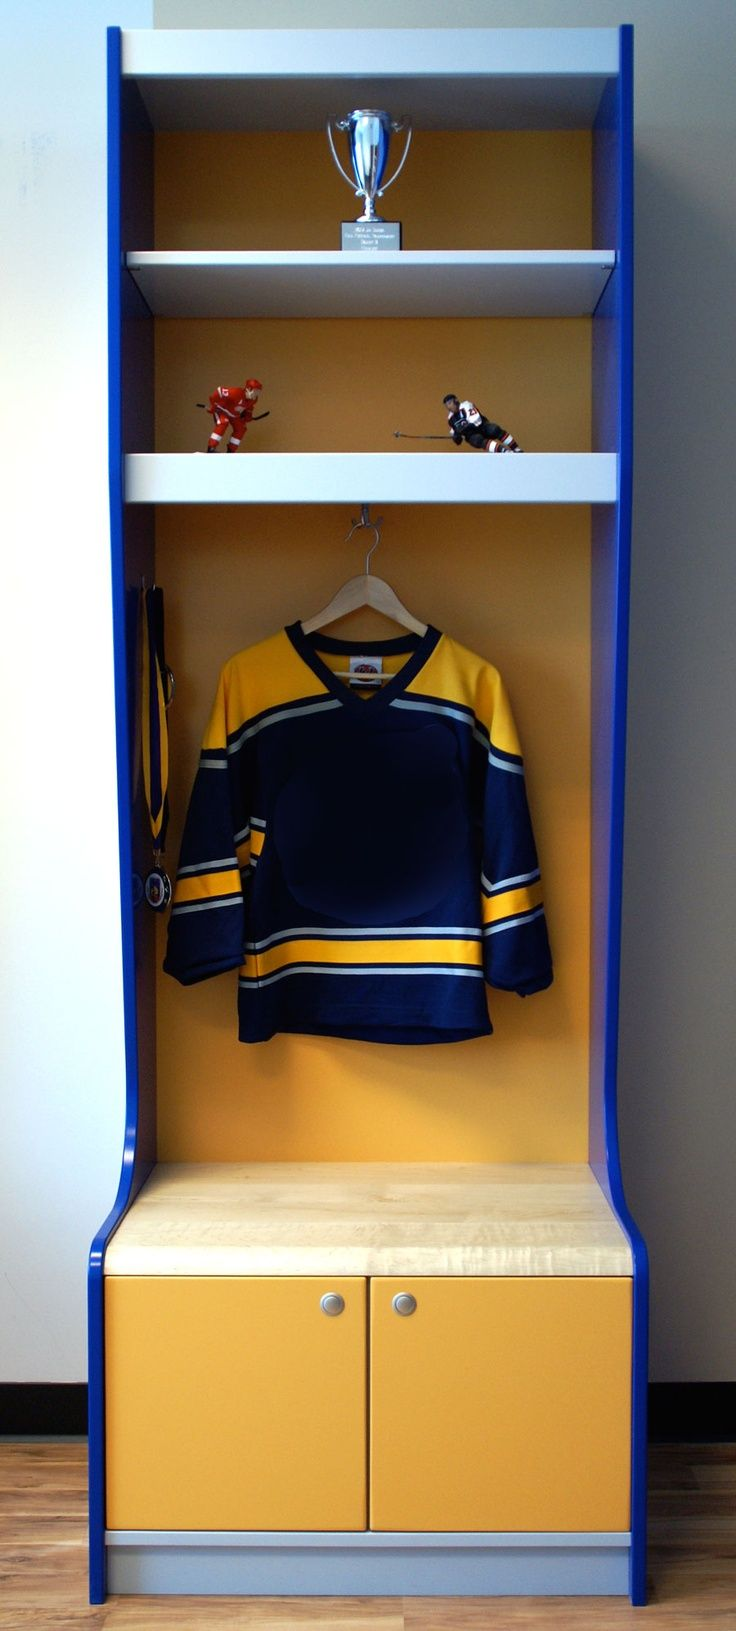 Locker Room Furniture For Kids Homedesignbiz.com